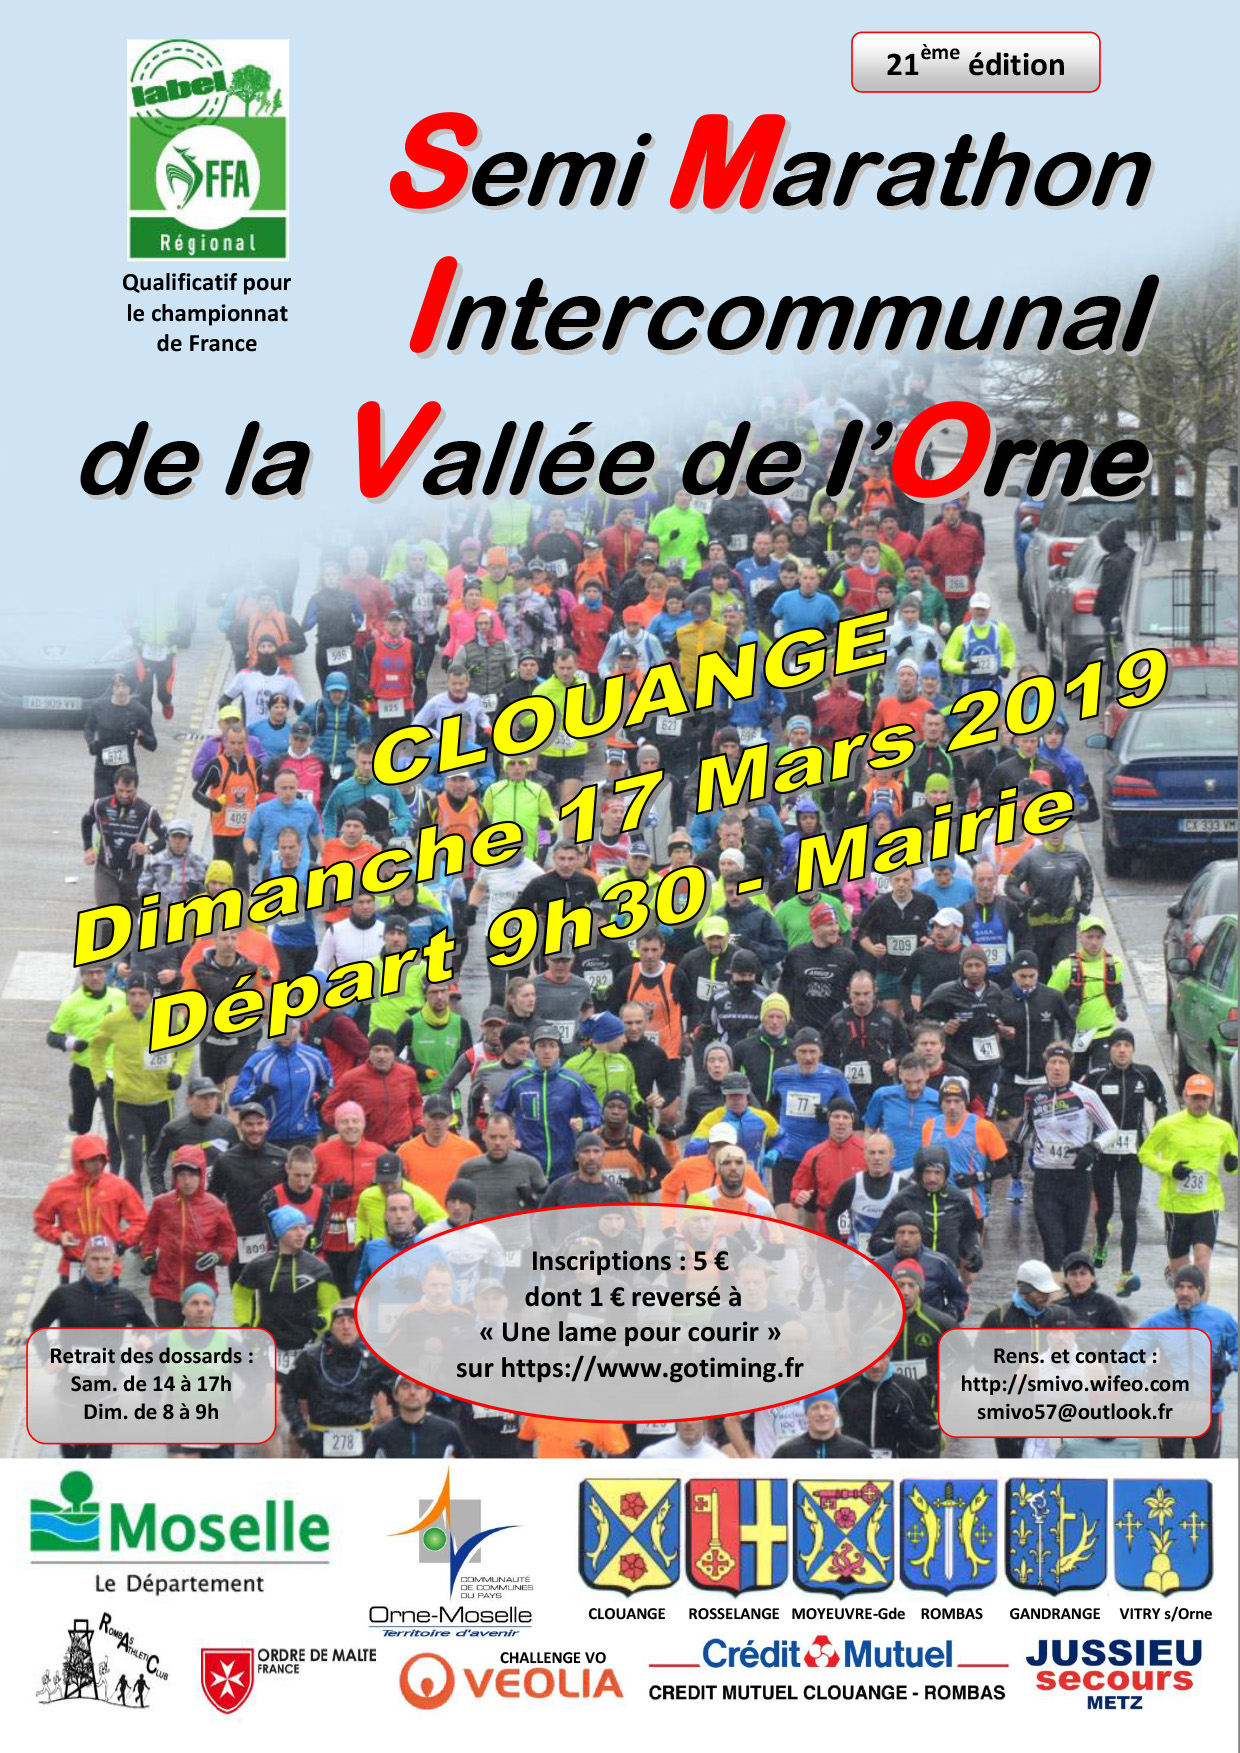 Semi Marathon Intercommunal de la Vallée de l'Orne